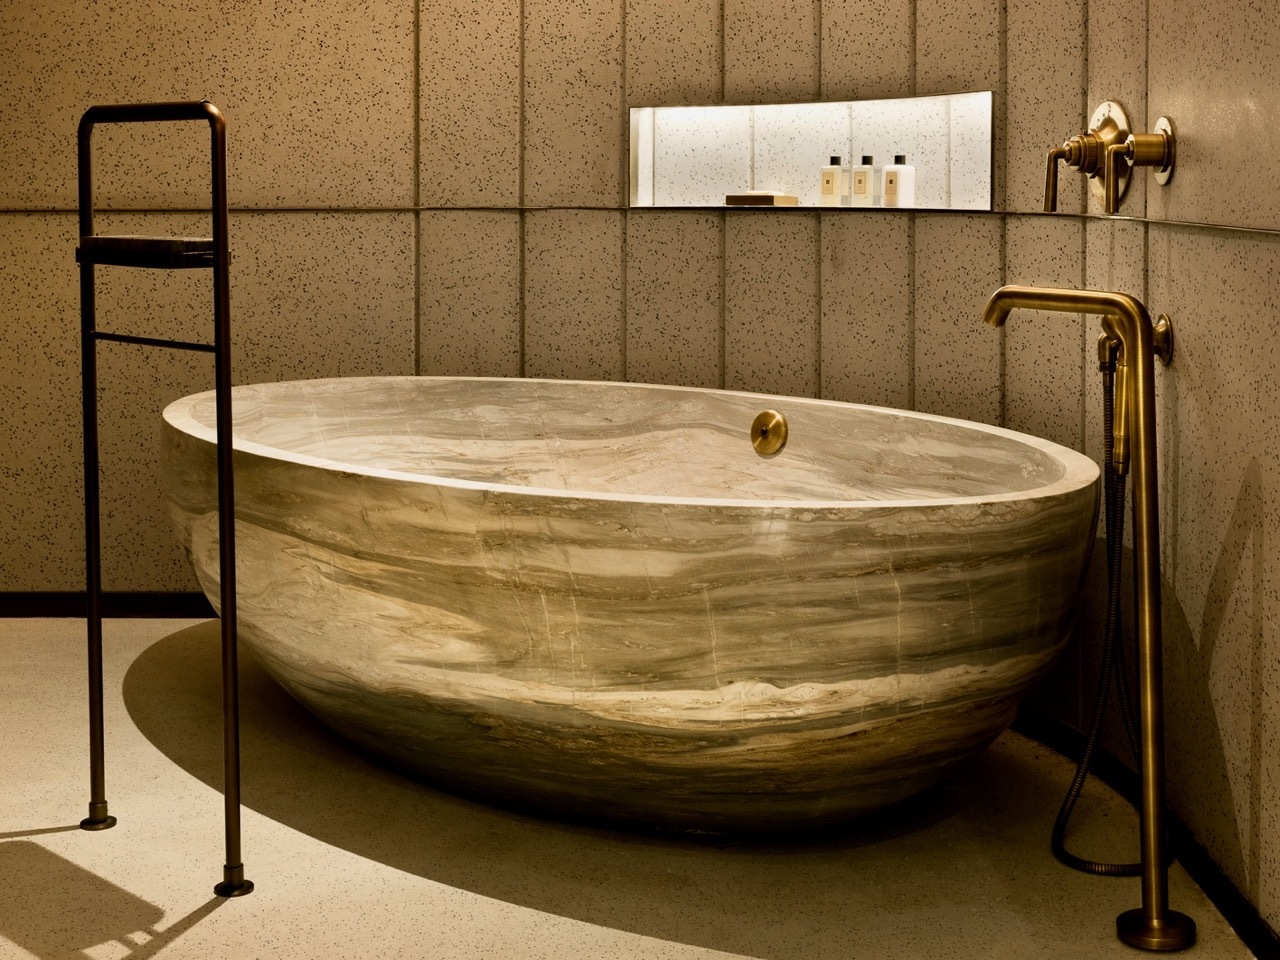 The most expensive hotel bathtubs in Hong Kong